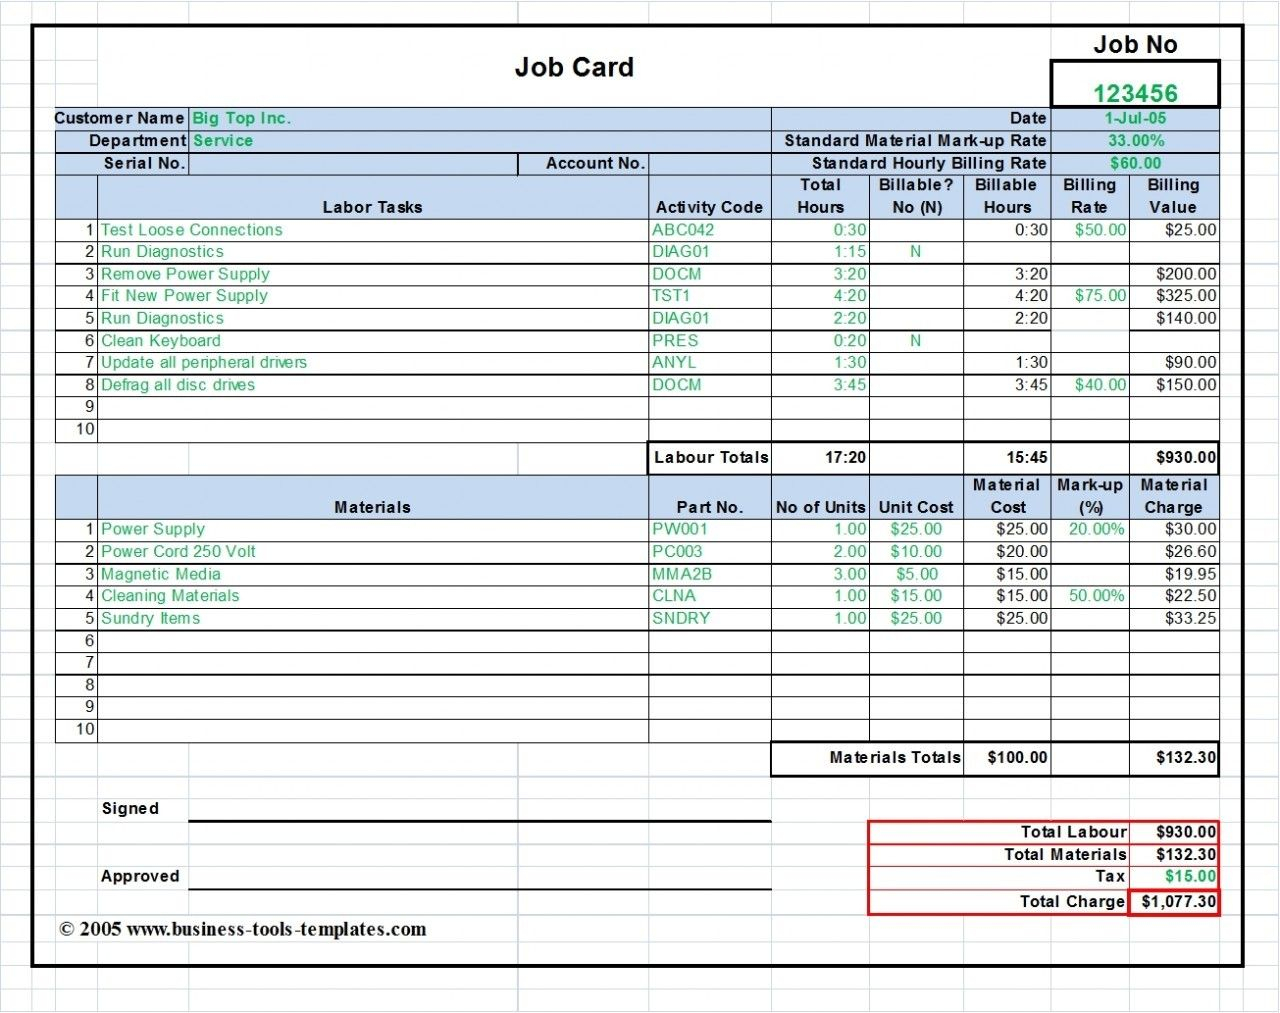 Machine Shop Estimating Spreadsheet Intended For Machine Shop Estimating Spreadsheet Free Estimate Templates  Pywrapper